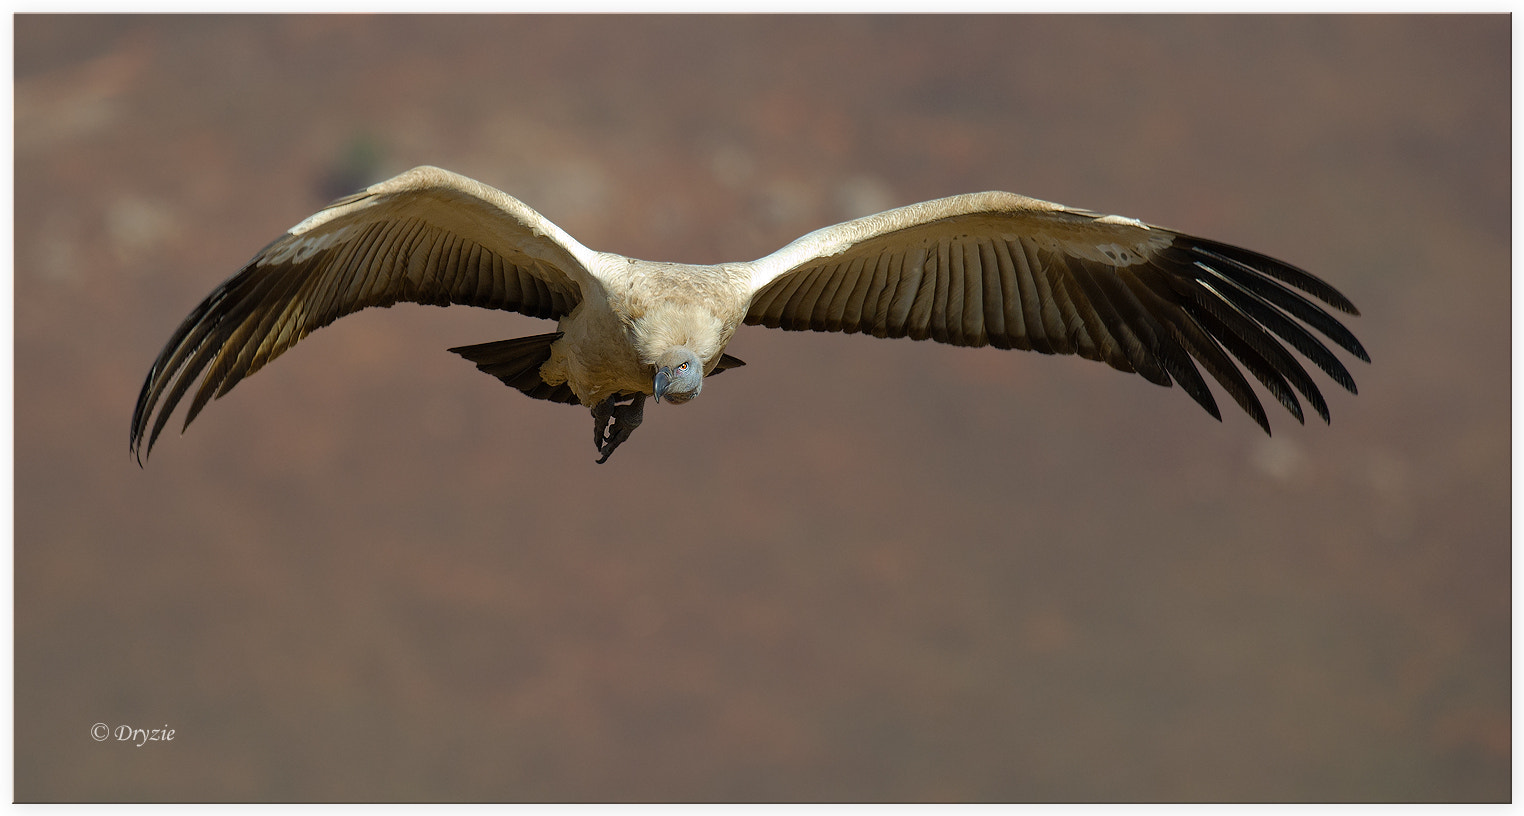 Photograph Cape Vulture 3 by Mark Drysdale on 500px